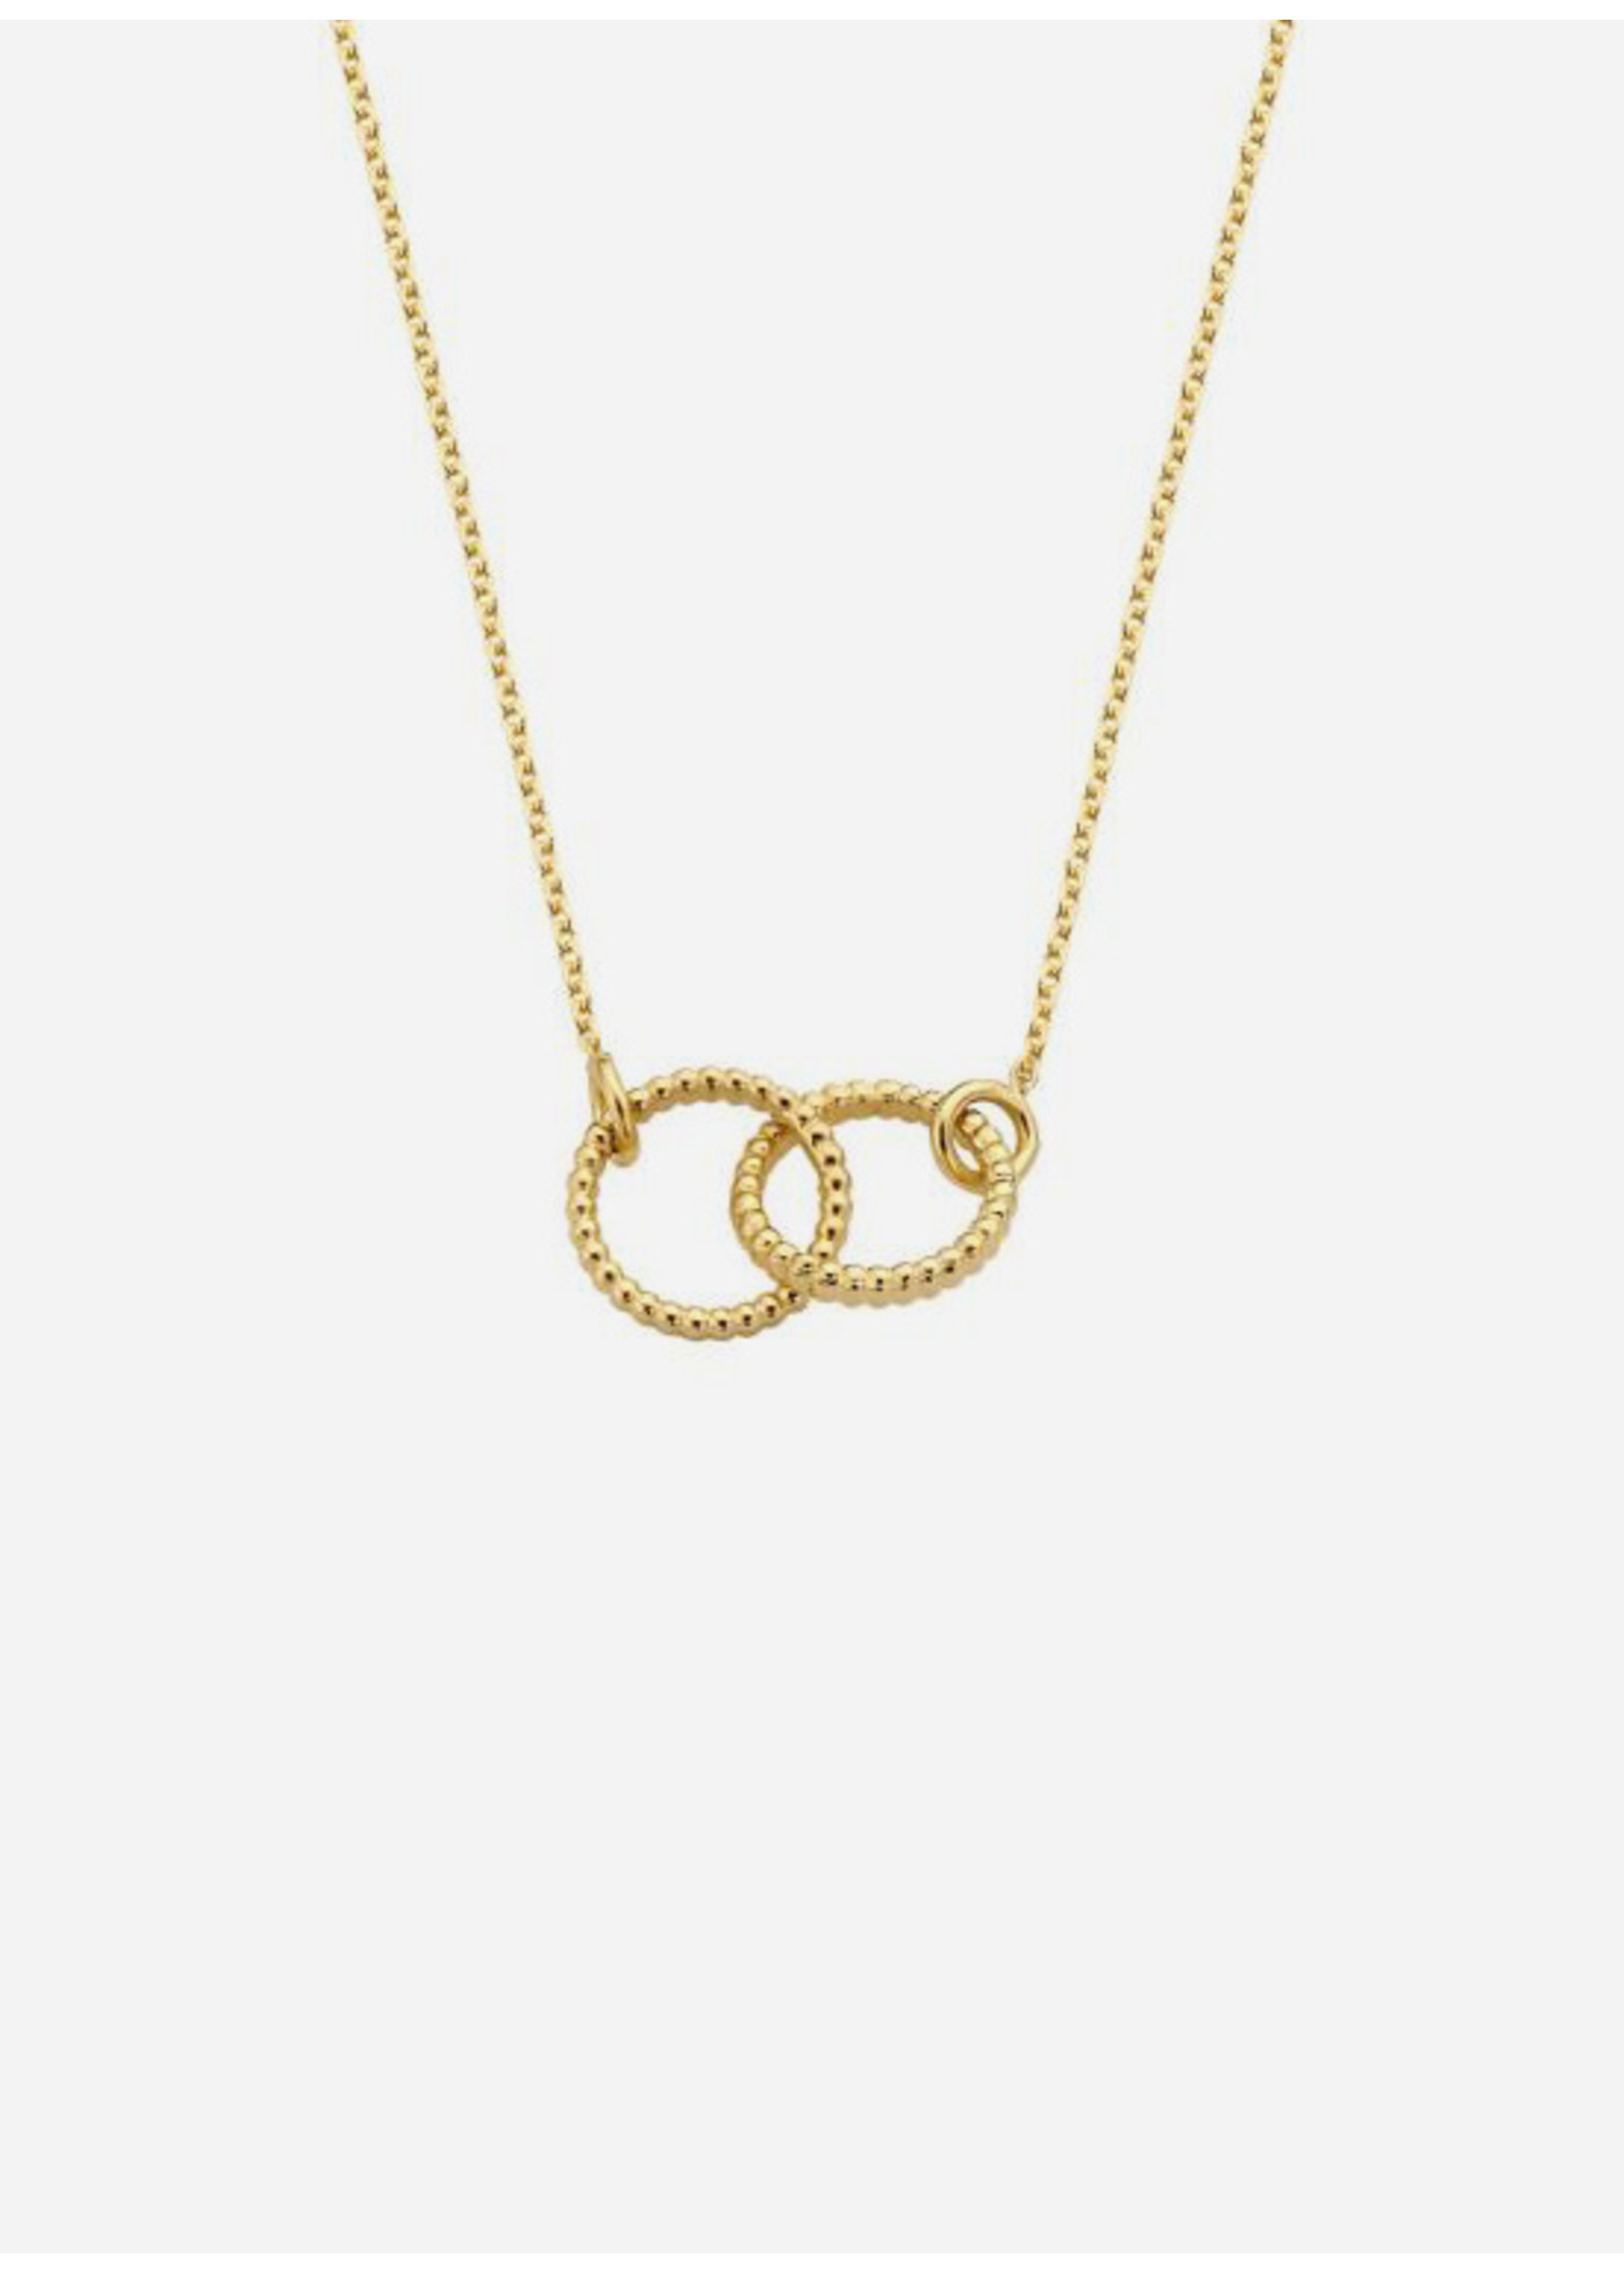 Just Franky Vintage necklace double open circle